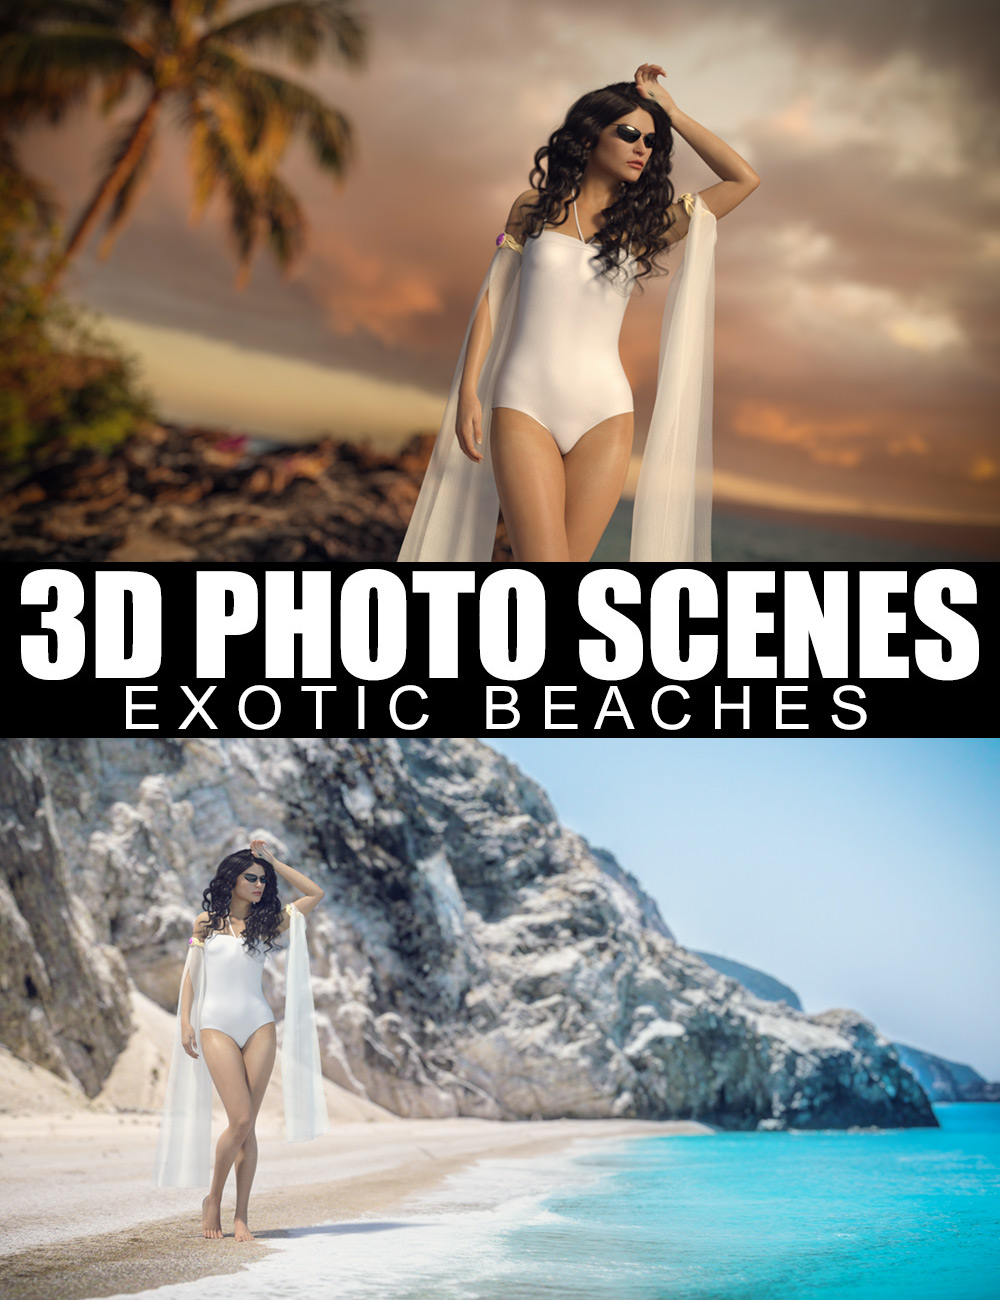 3D Photo Scenes - Exotic Beaches by: Dreamlight, 3D Models by Daz 3D